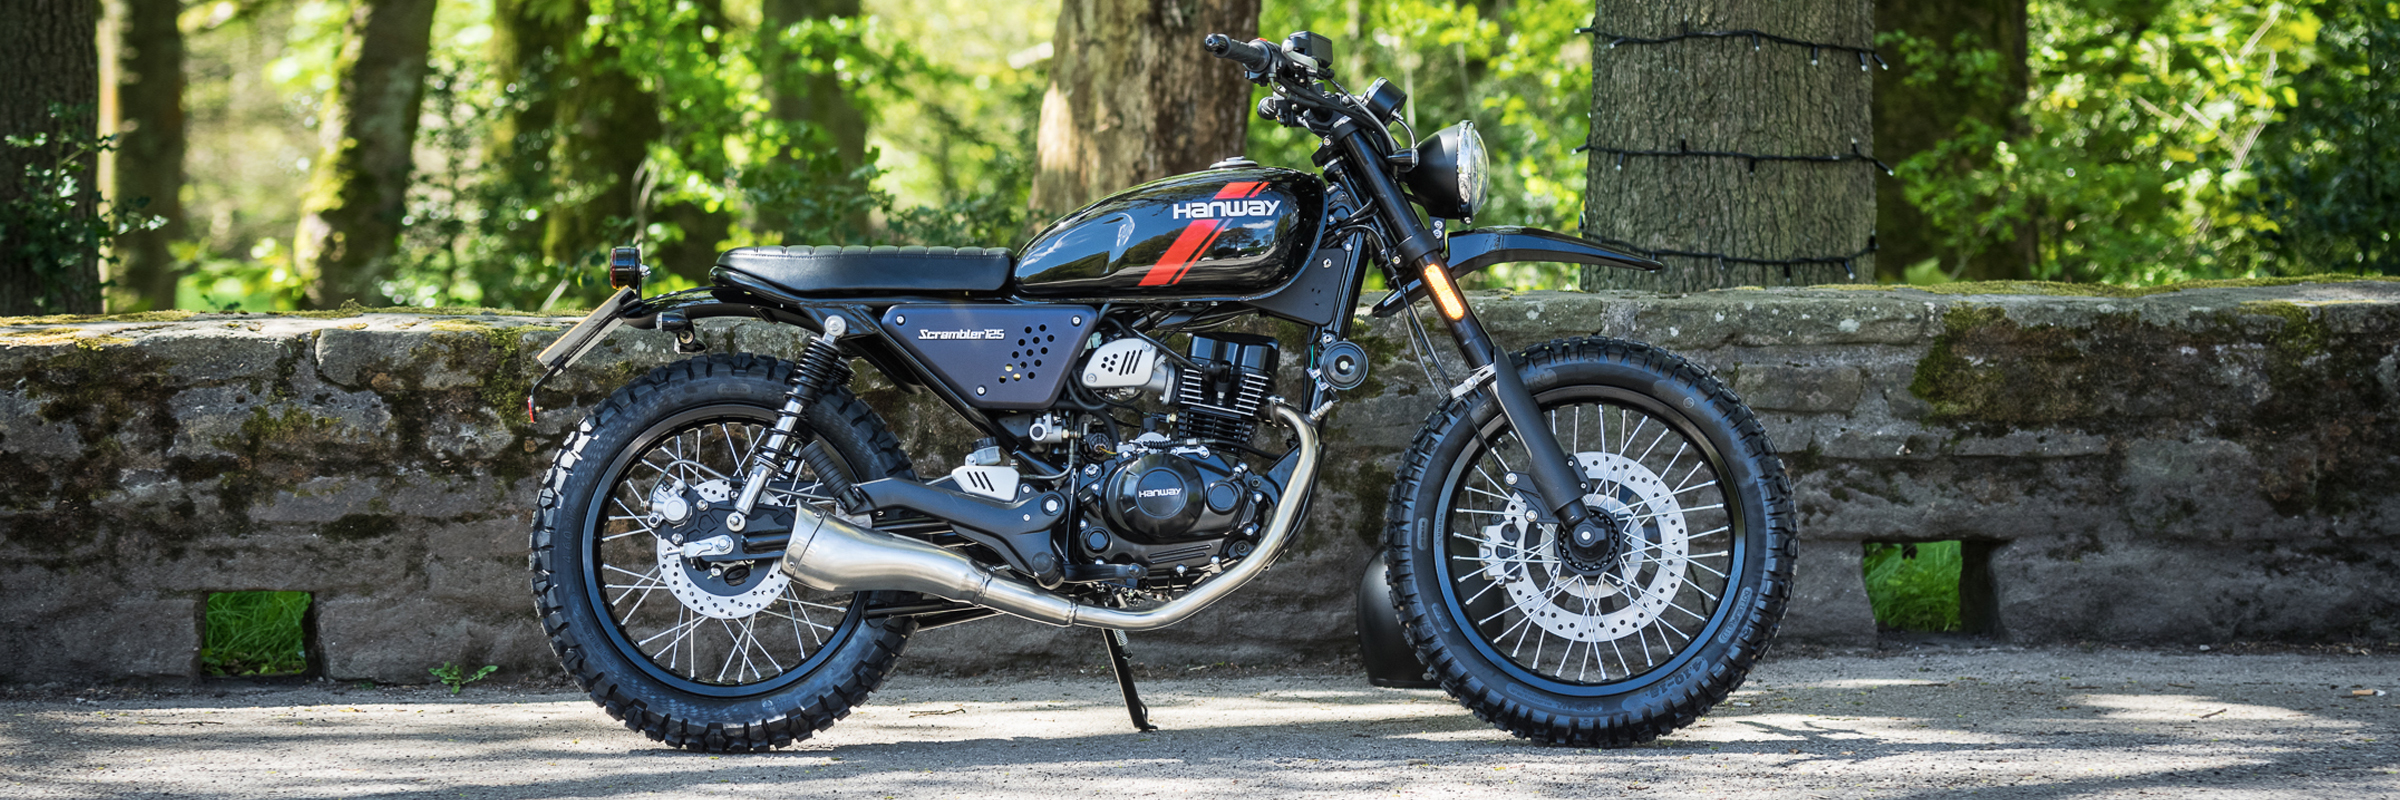 Scrambler - All mod cons with lots of can do